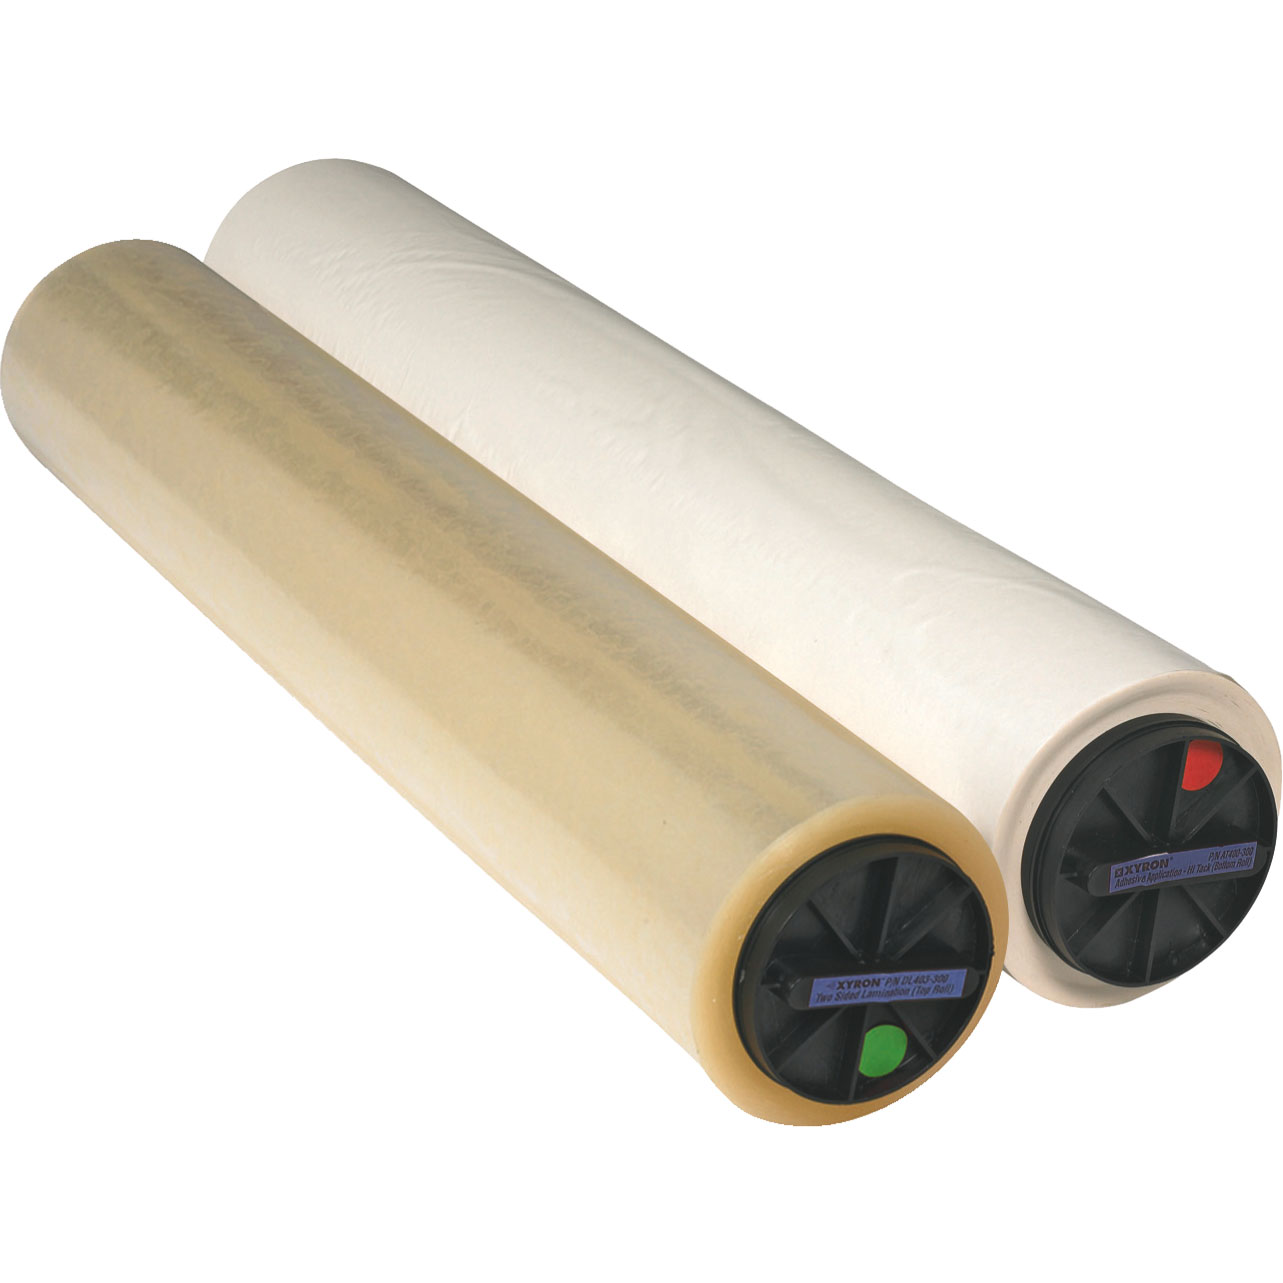 Xyron LAT409-150 Laminate & Repositionable Adhesive Roll